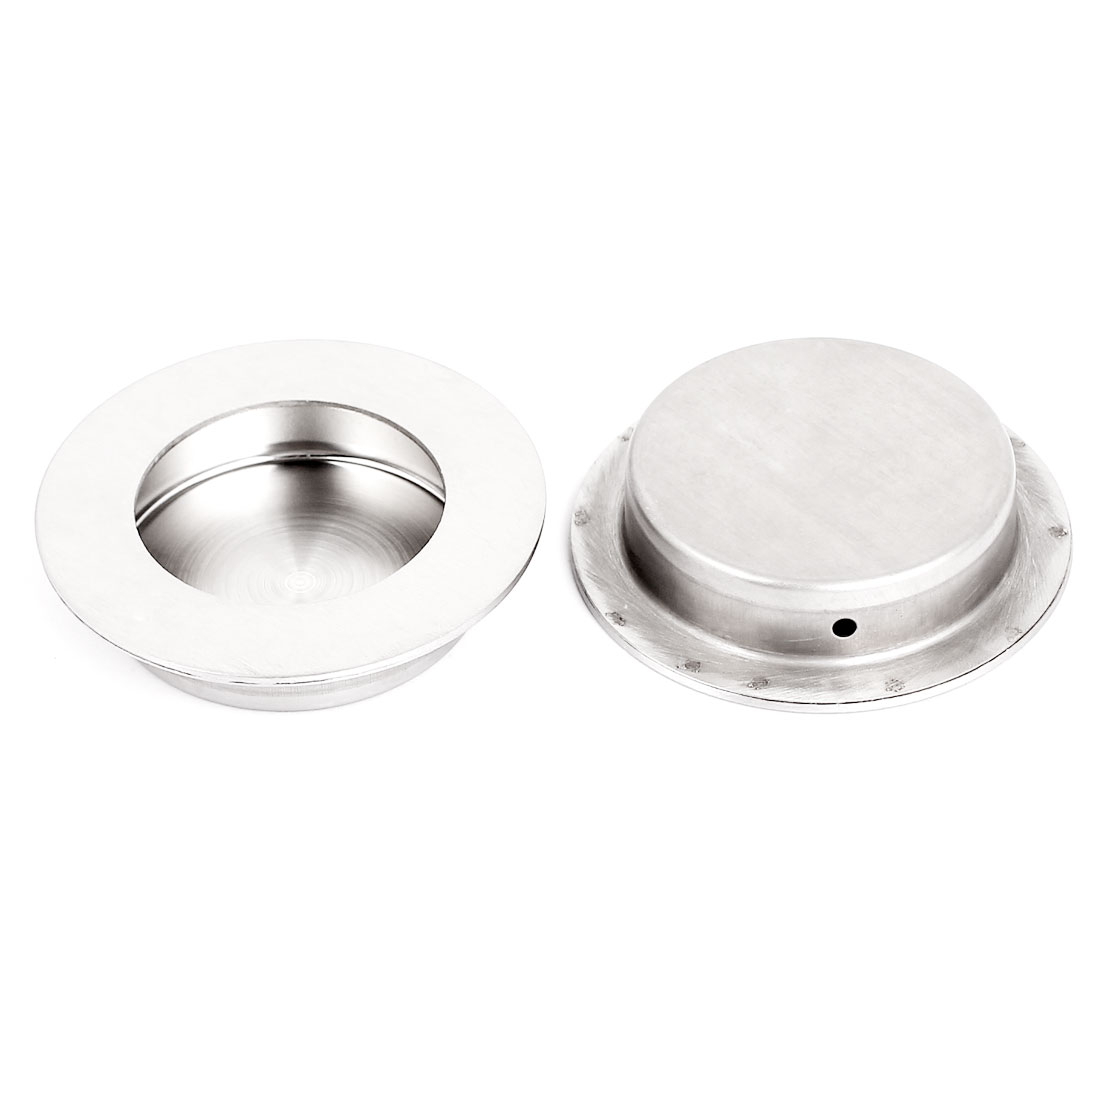 Sliding Door Drawer Stainless Steel 65mm Round Recessed